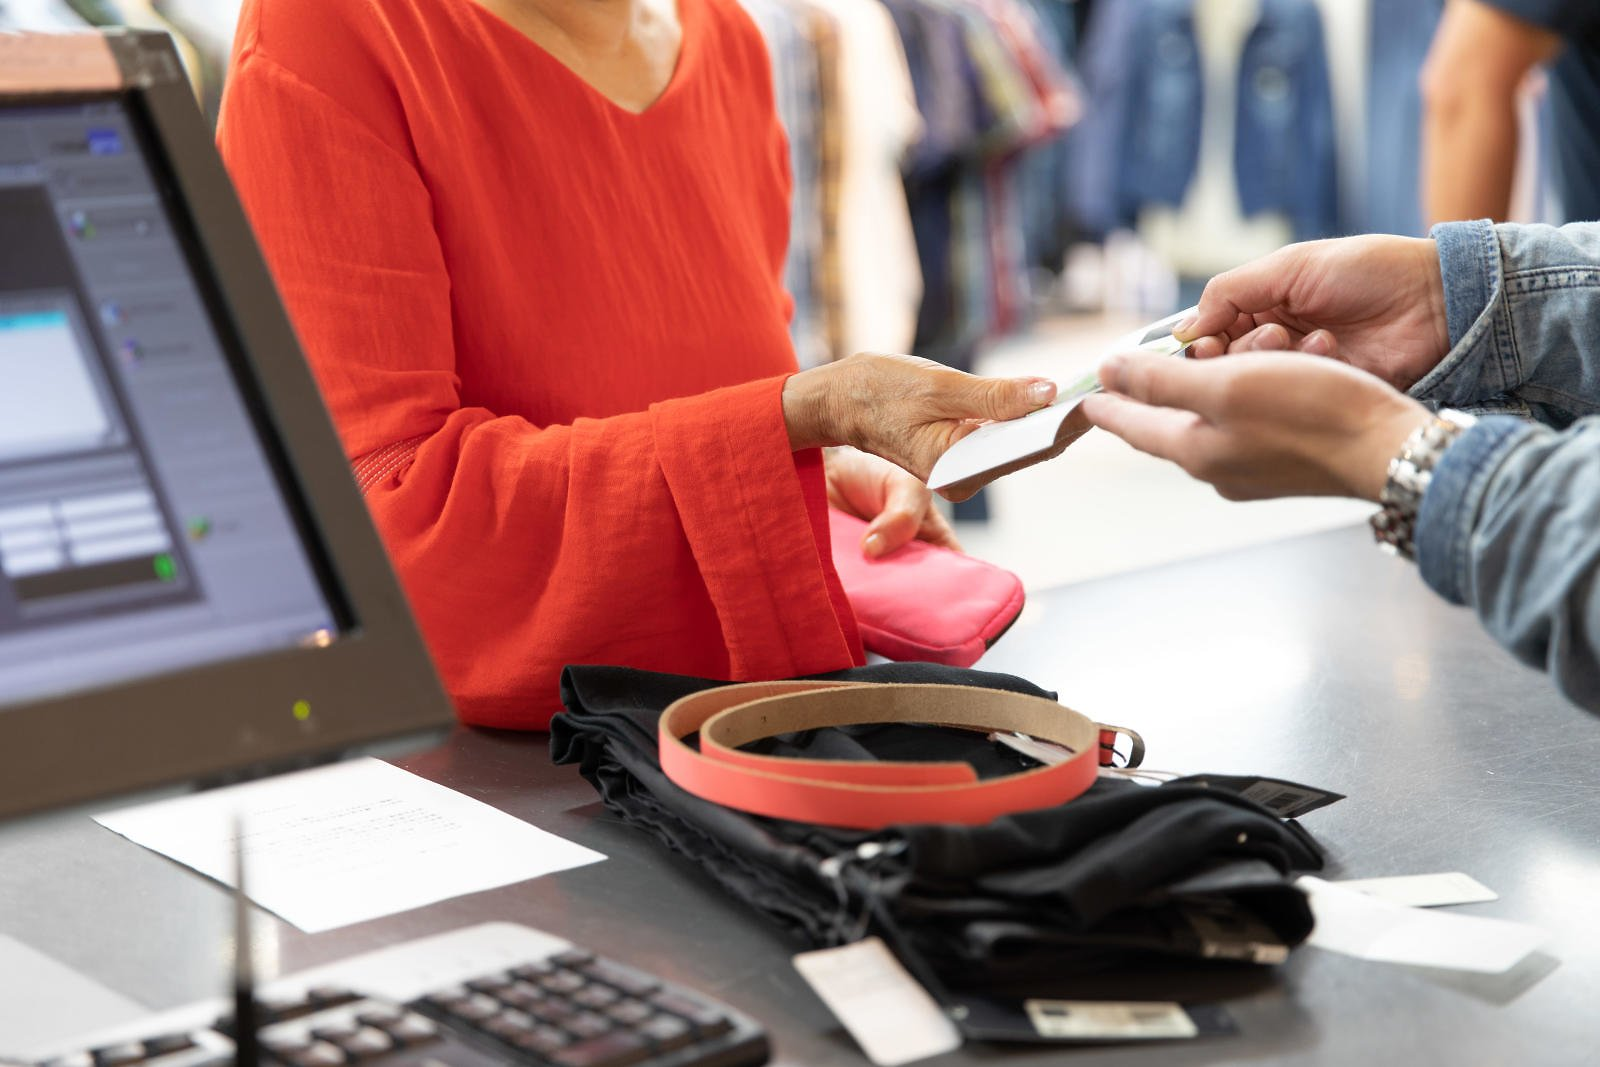 How to Clean Your Credit Card Amid Coronavirus